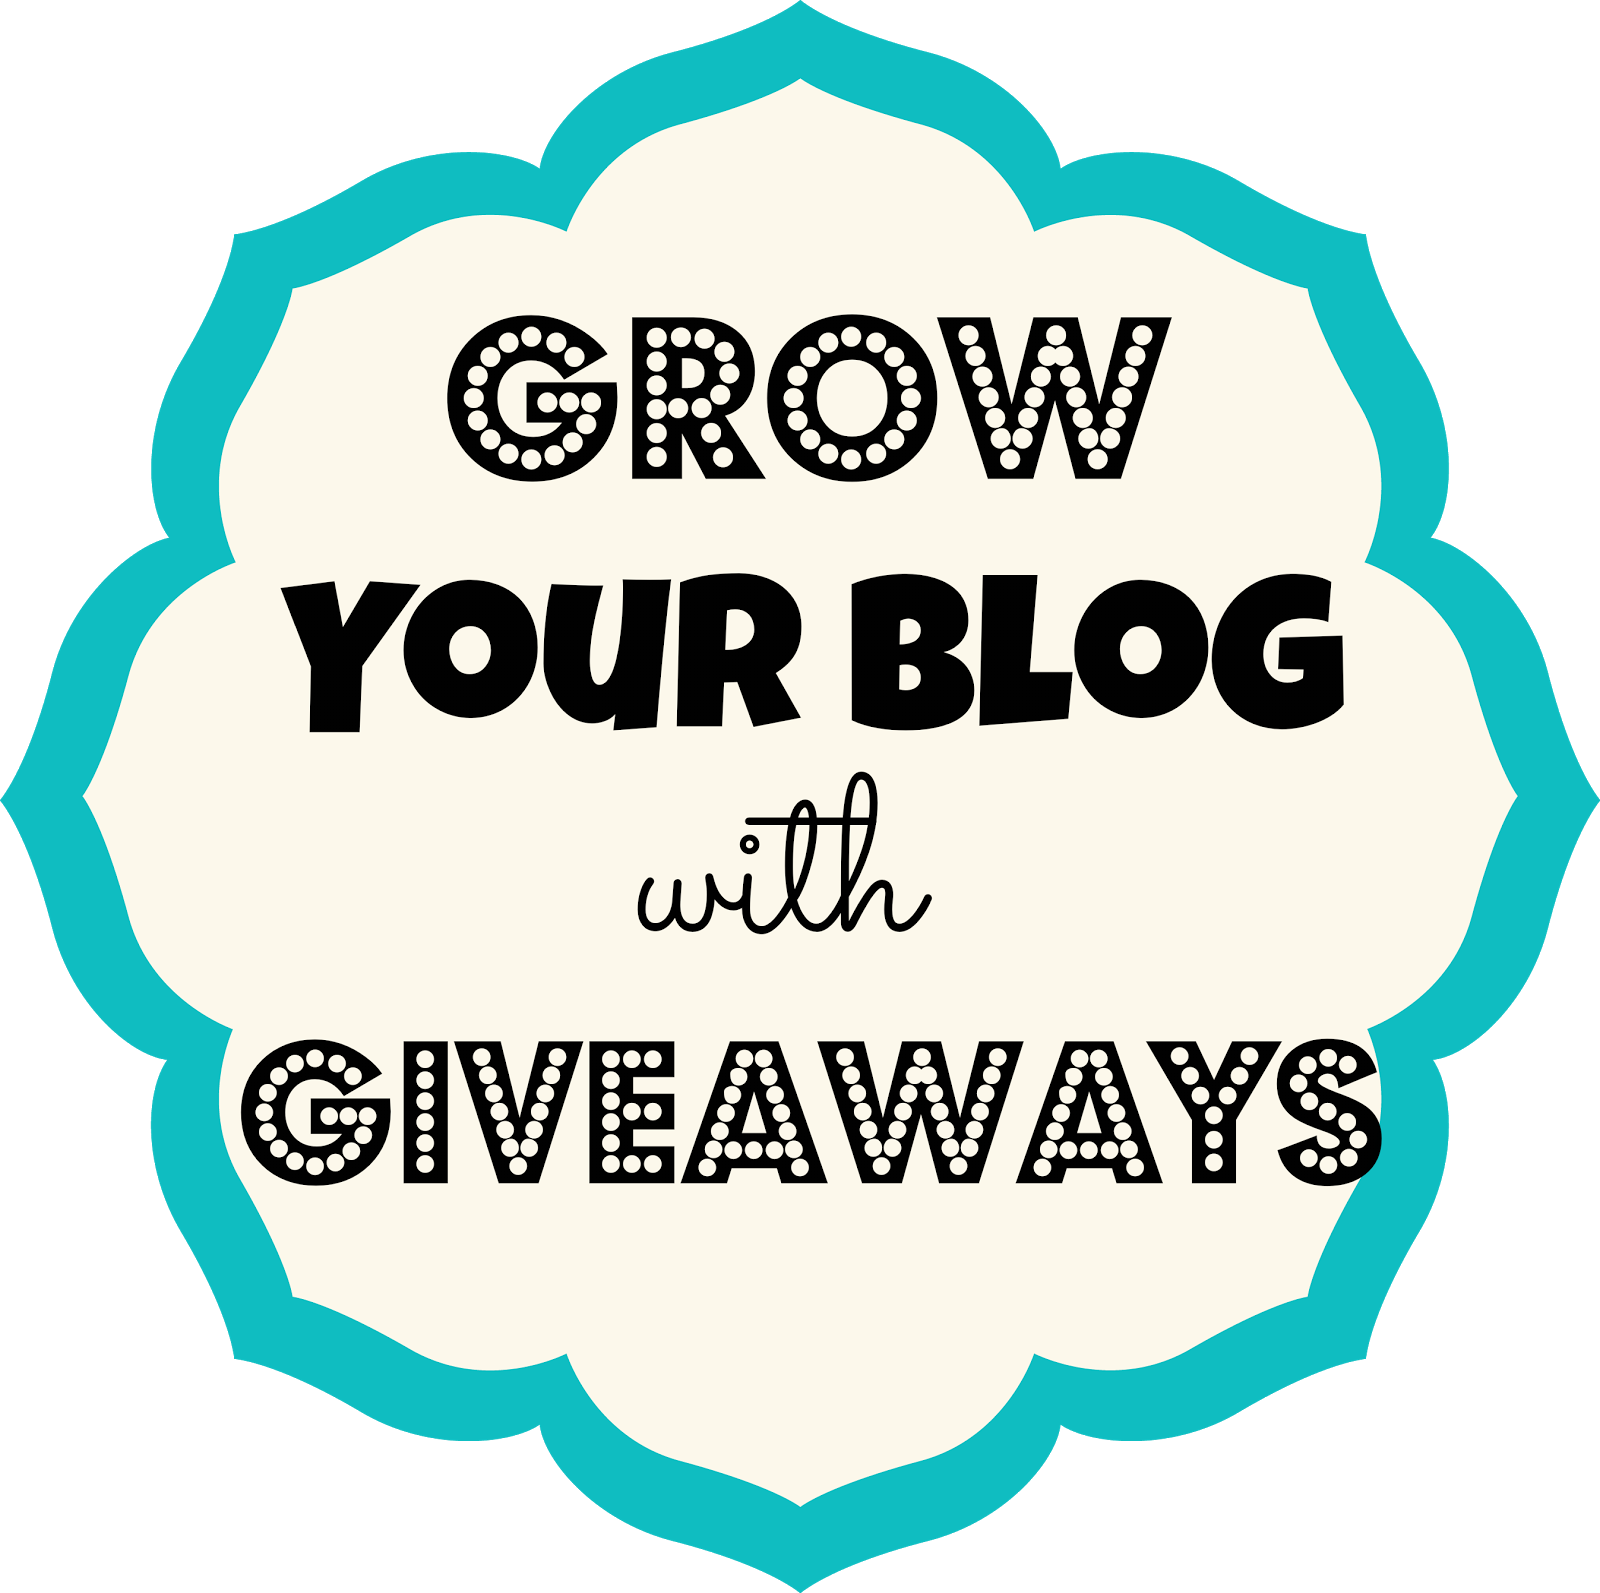 sweepstakes promotions how to grow your blog with giveaways 1616